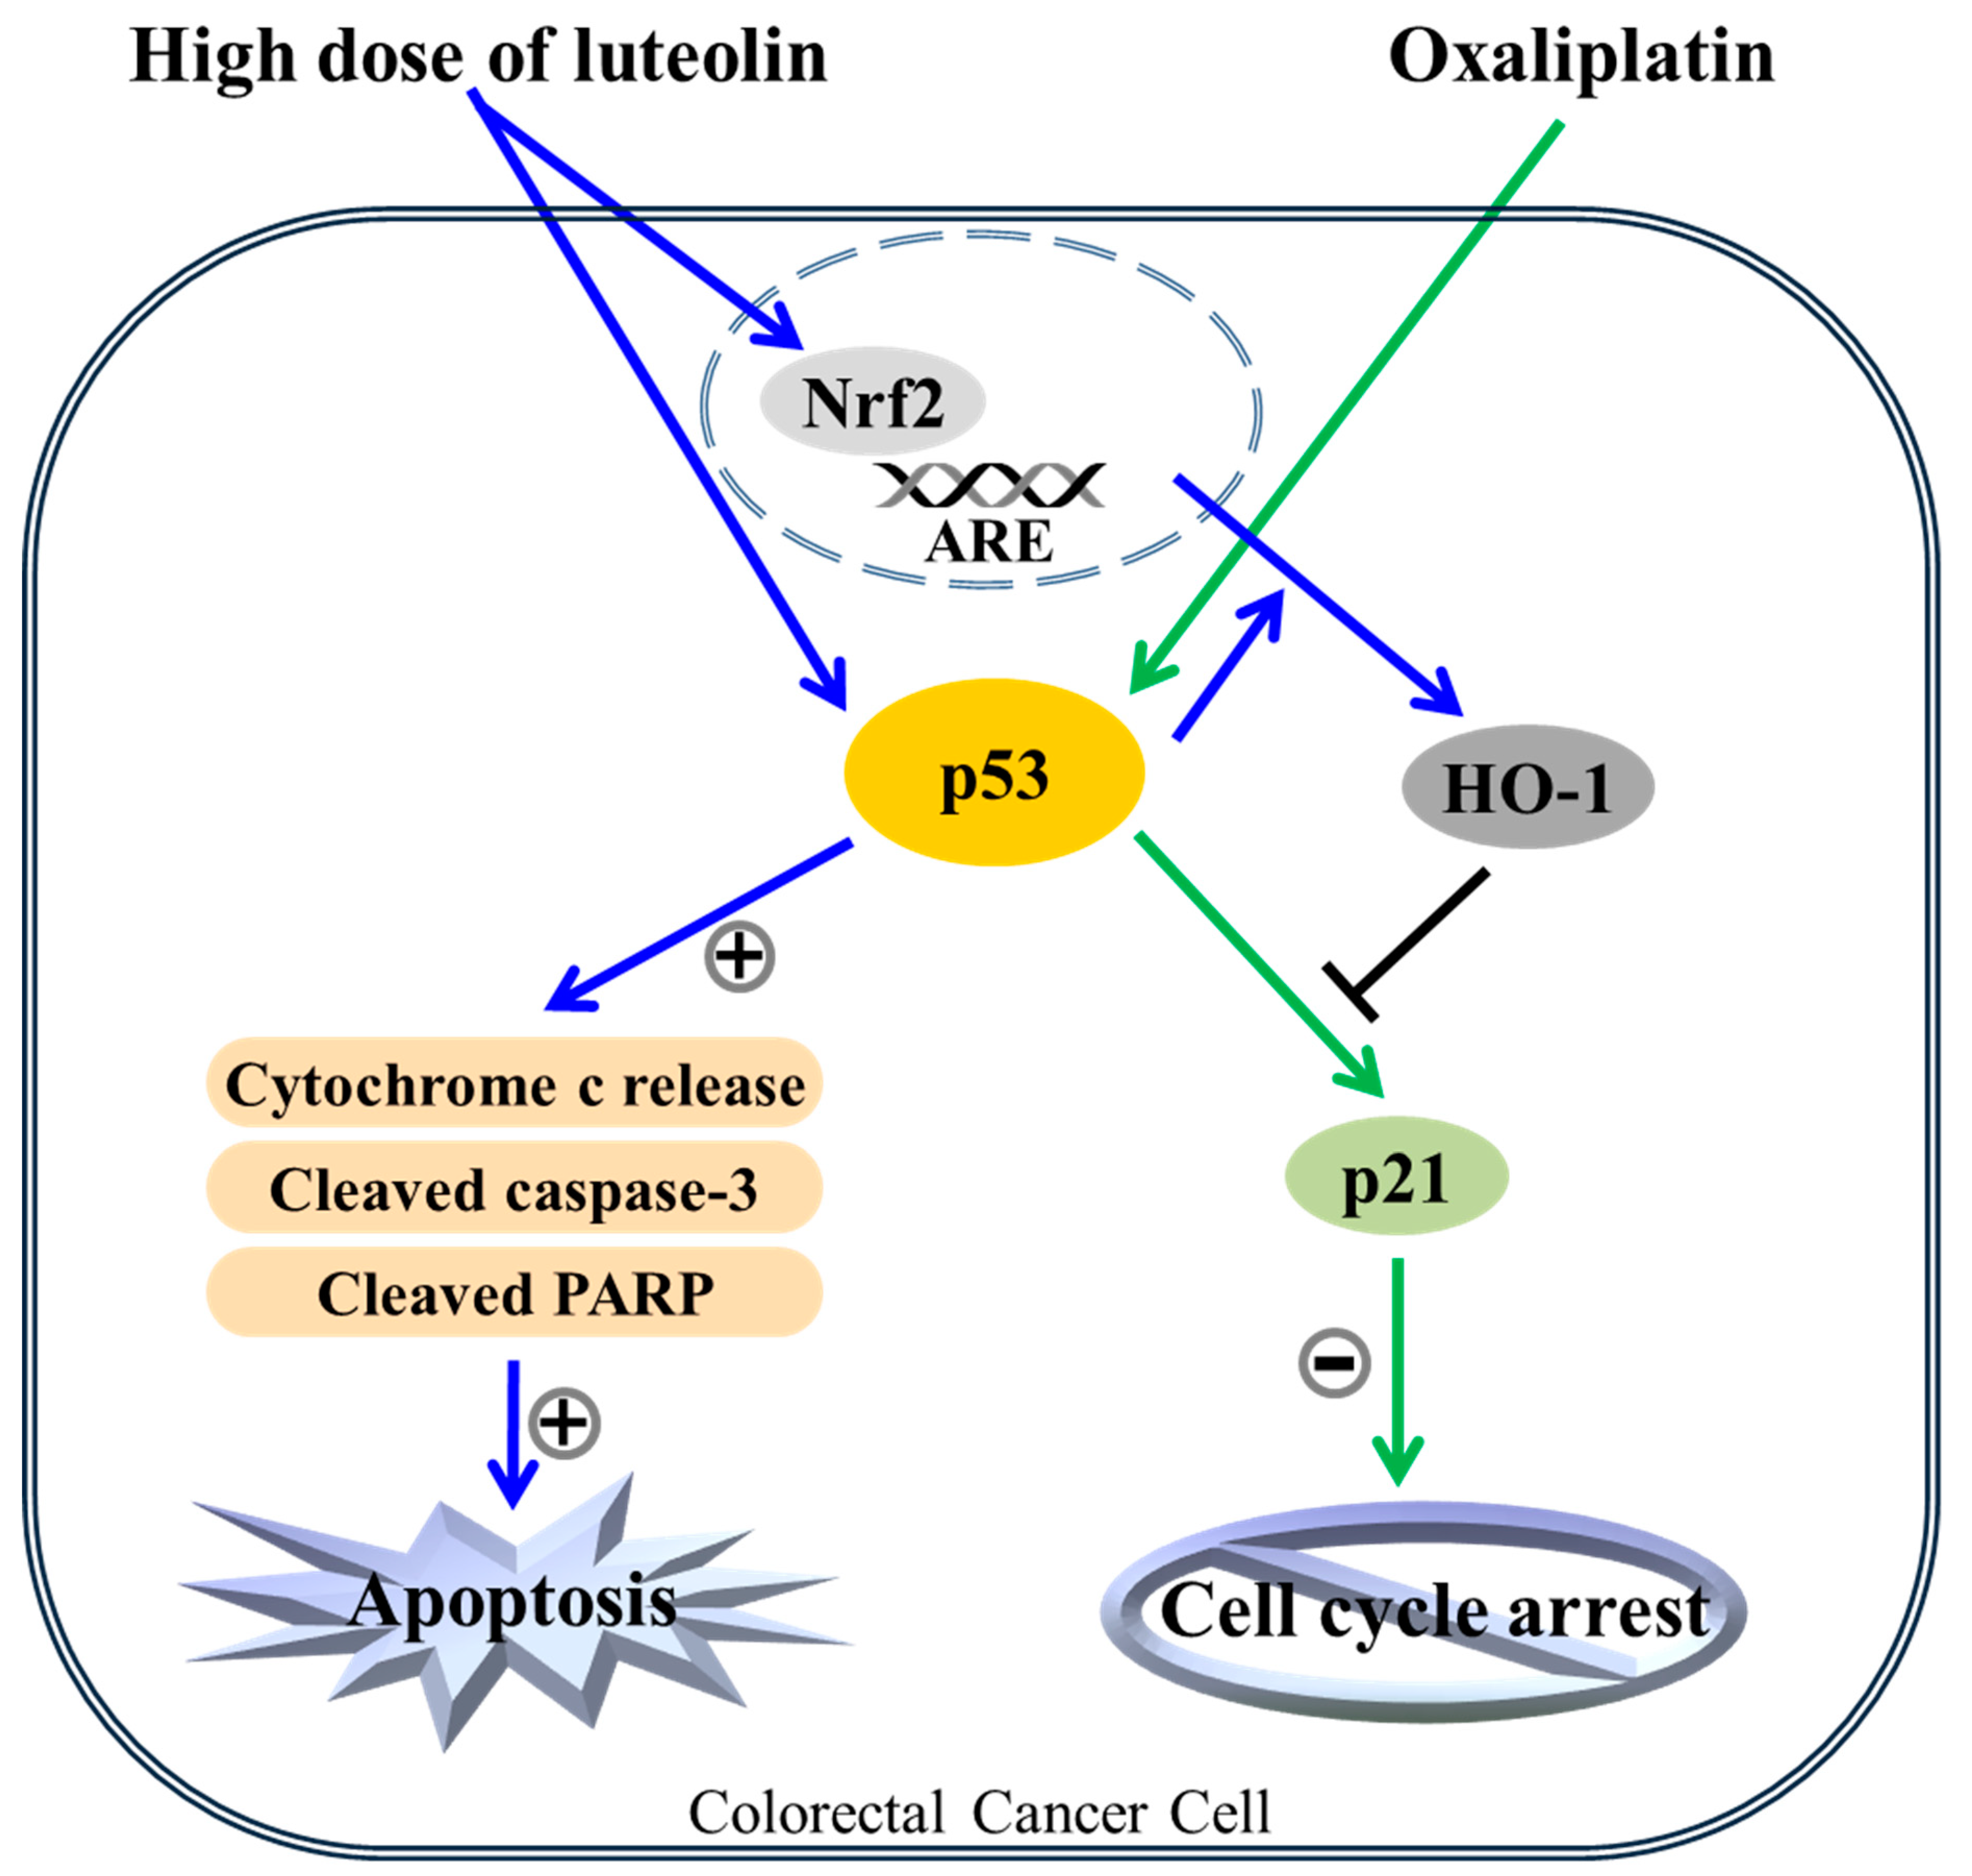 Nutrients Free Full Text Luteolin Shifts Oxaliplatin Induced Cell Cycle Arrest At G0 G1 To Apoptosis In Hct116 Human Colorectal Carcinoma Cells